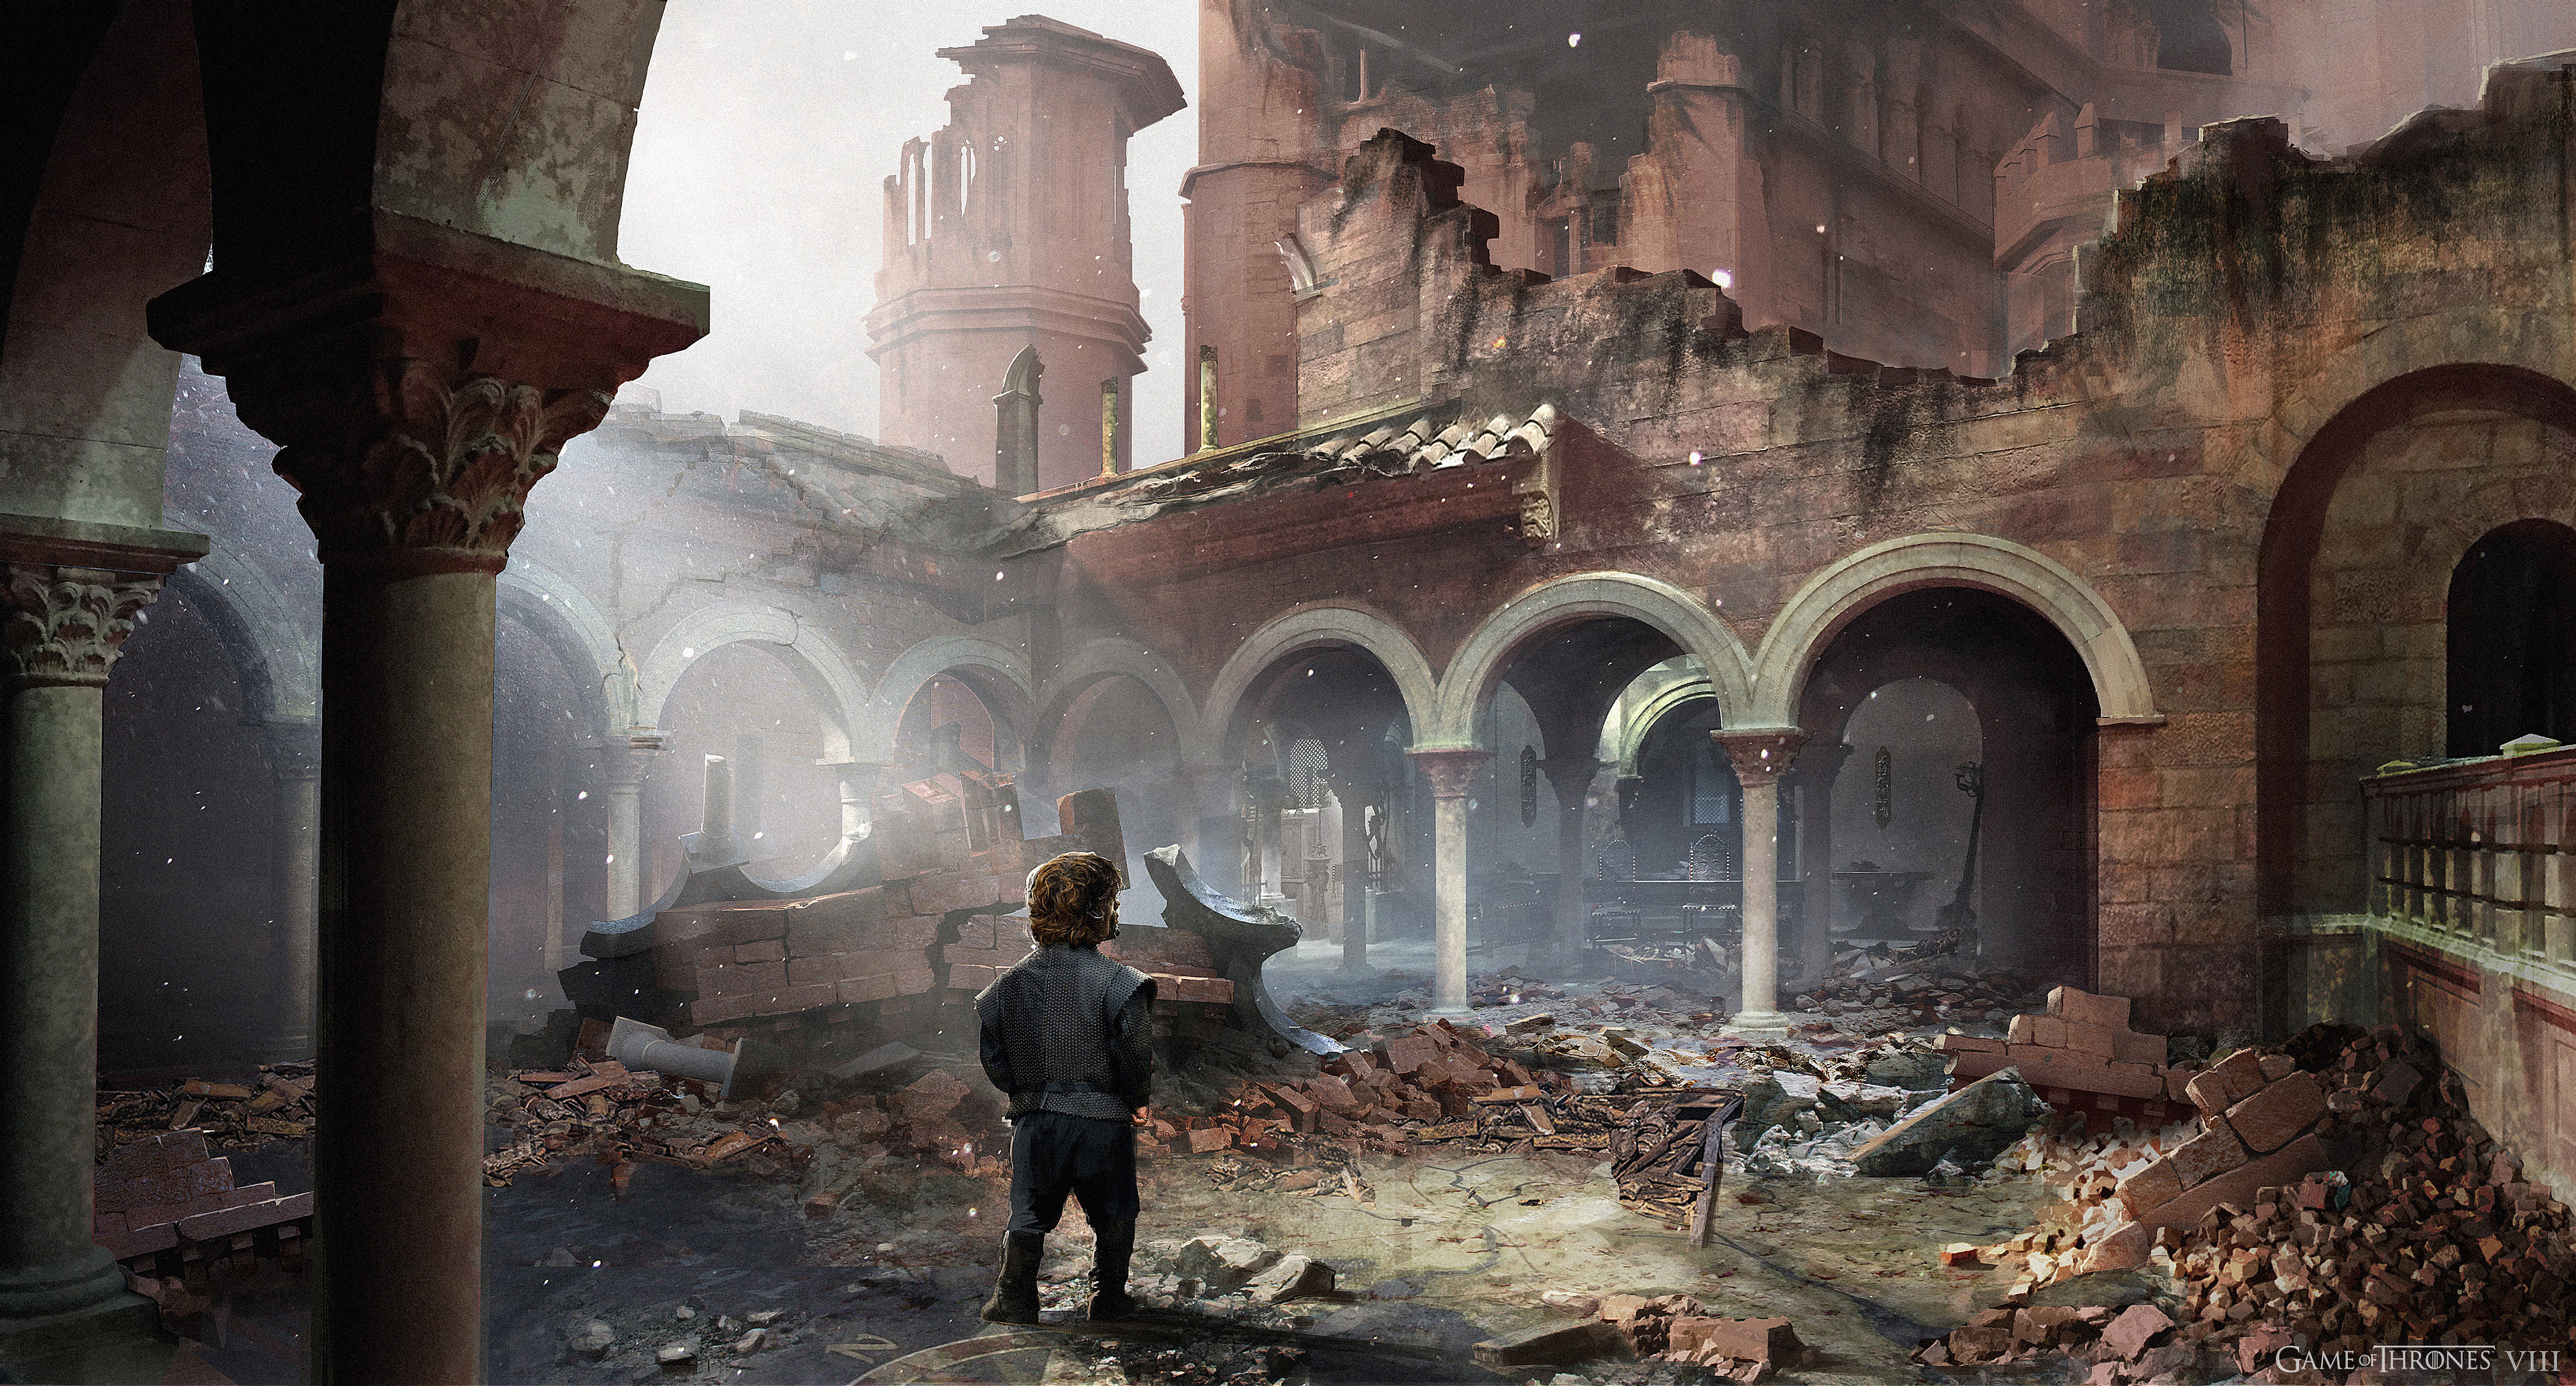 Tyrion on his search for his siblings walks over the ruined map